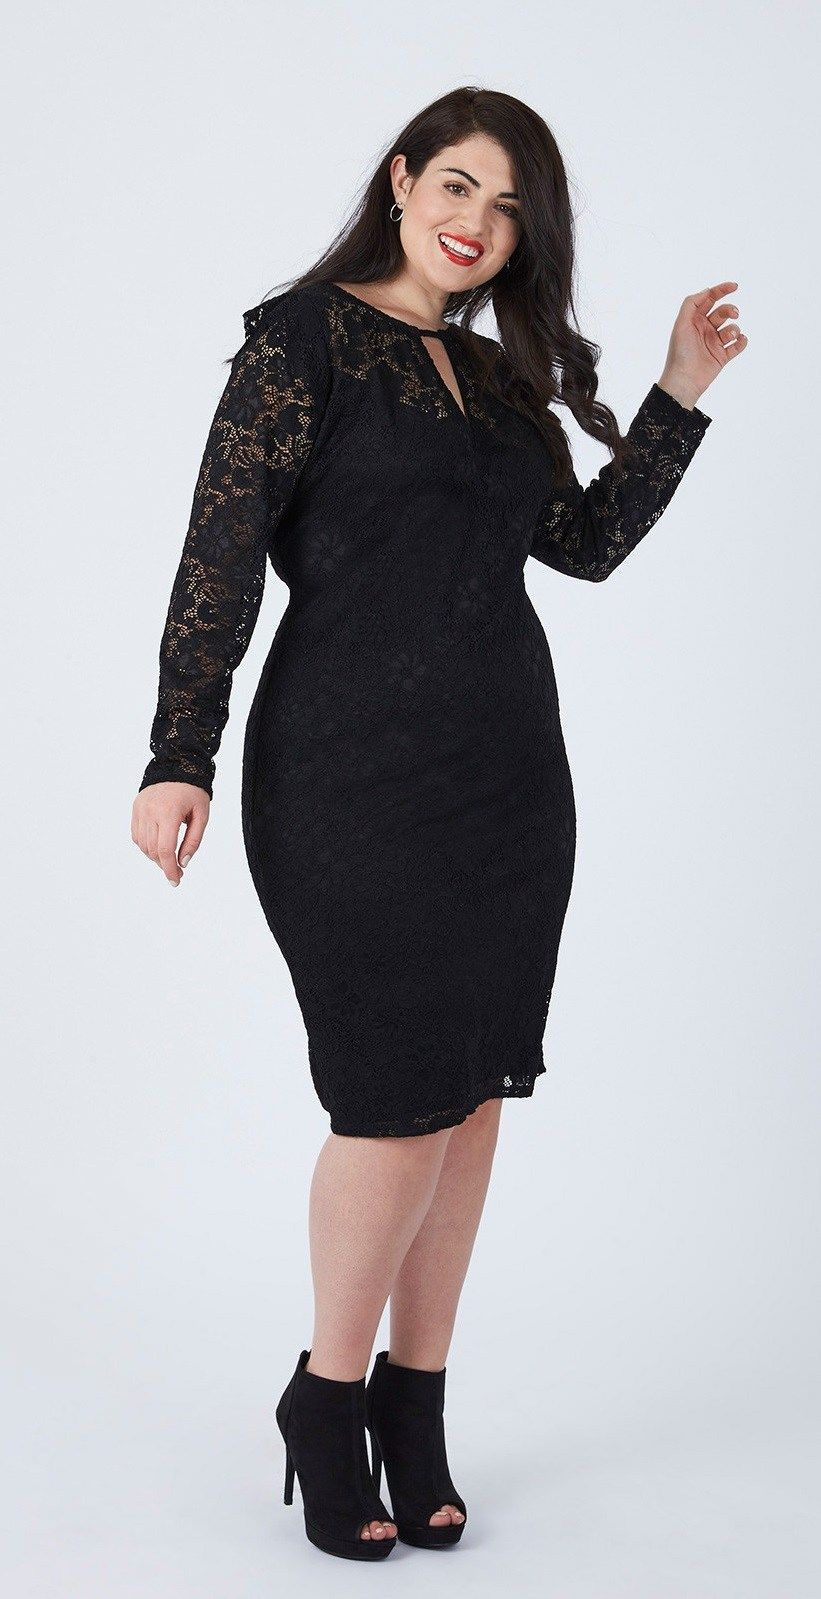 Plus Size Lbd Perfection Alexa Webb Plus Size Holiday Dresses Lbd Outfit Plus Size Outfits [ 1599 x 821 Pixel ]